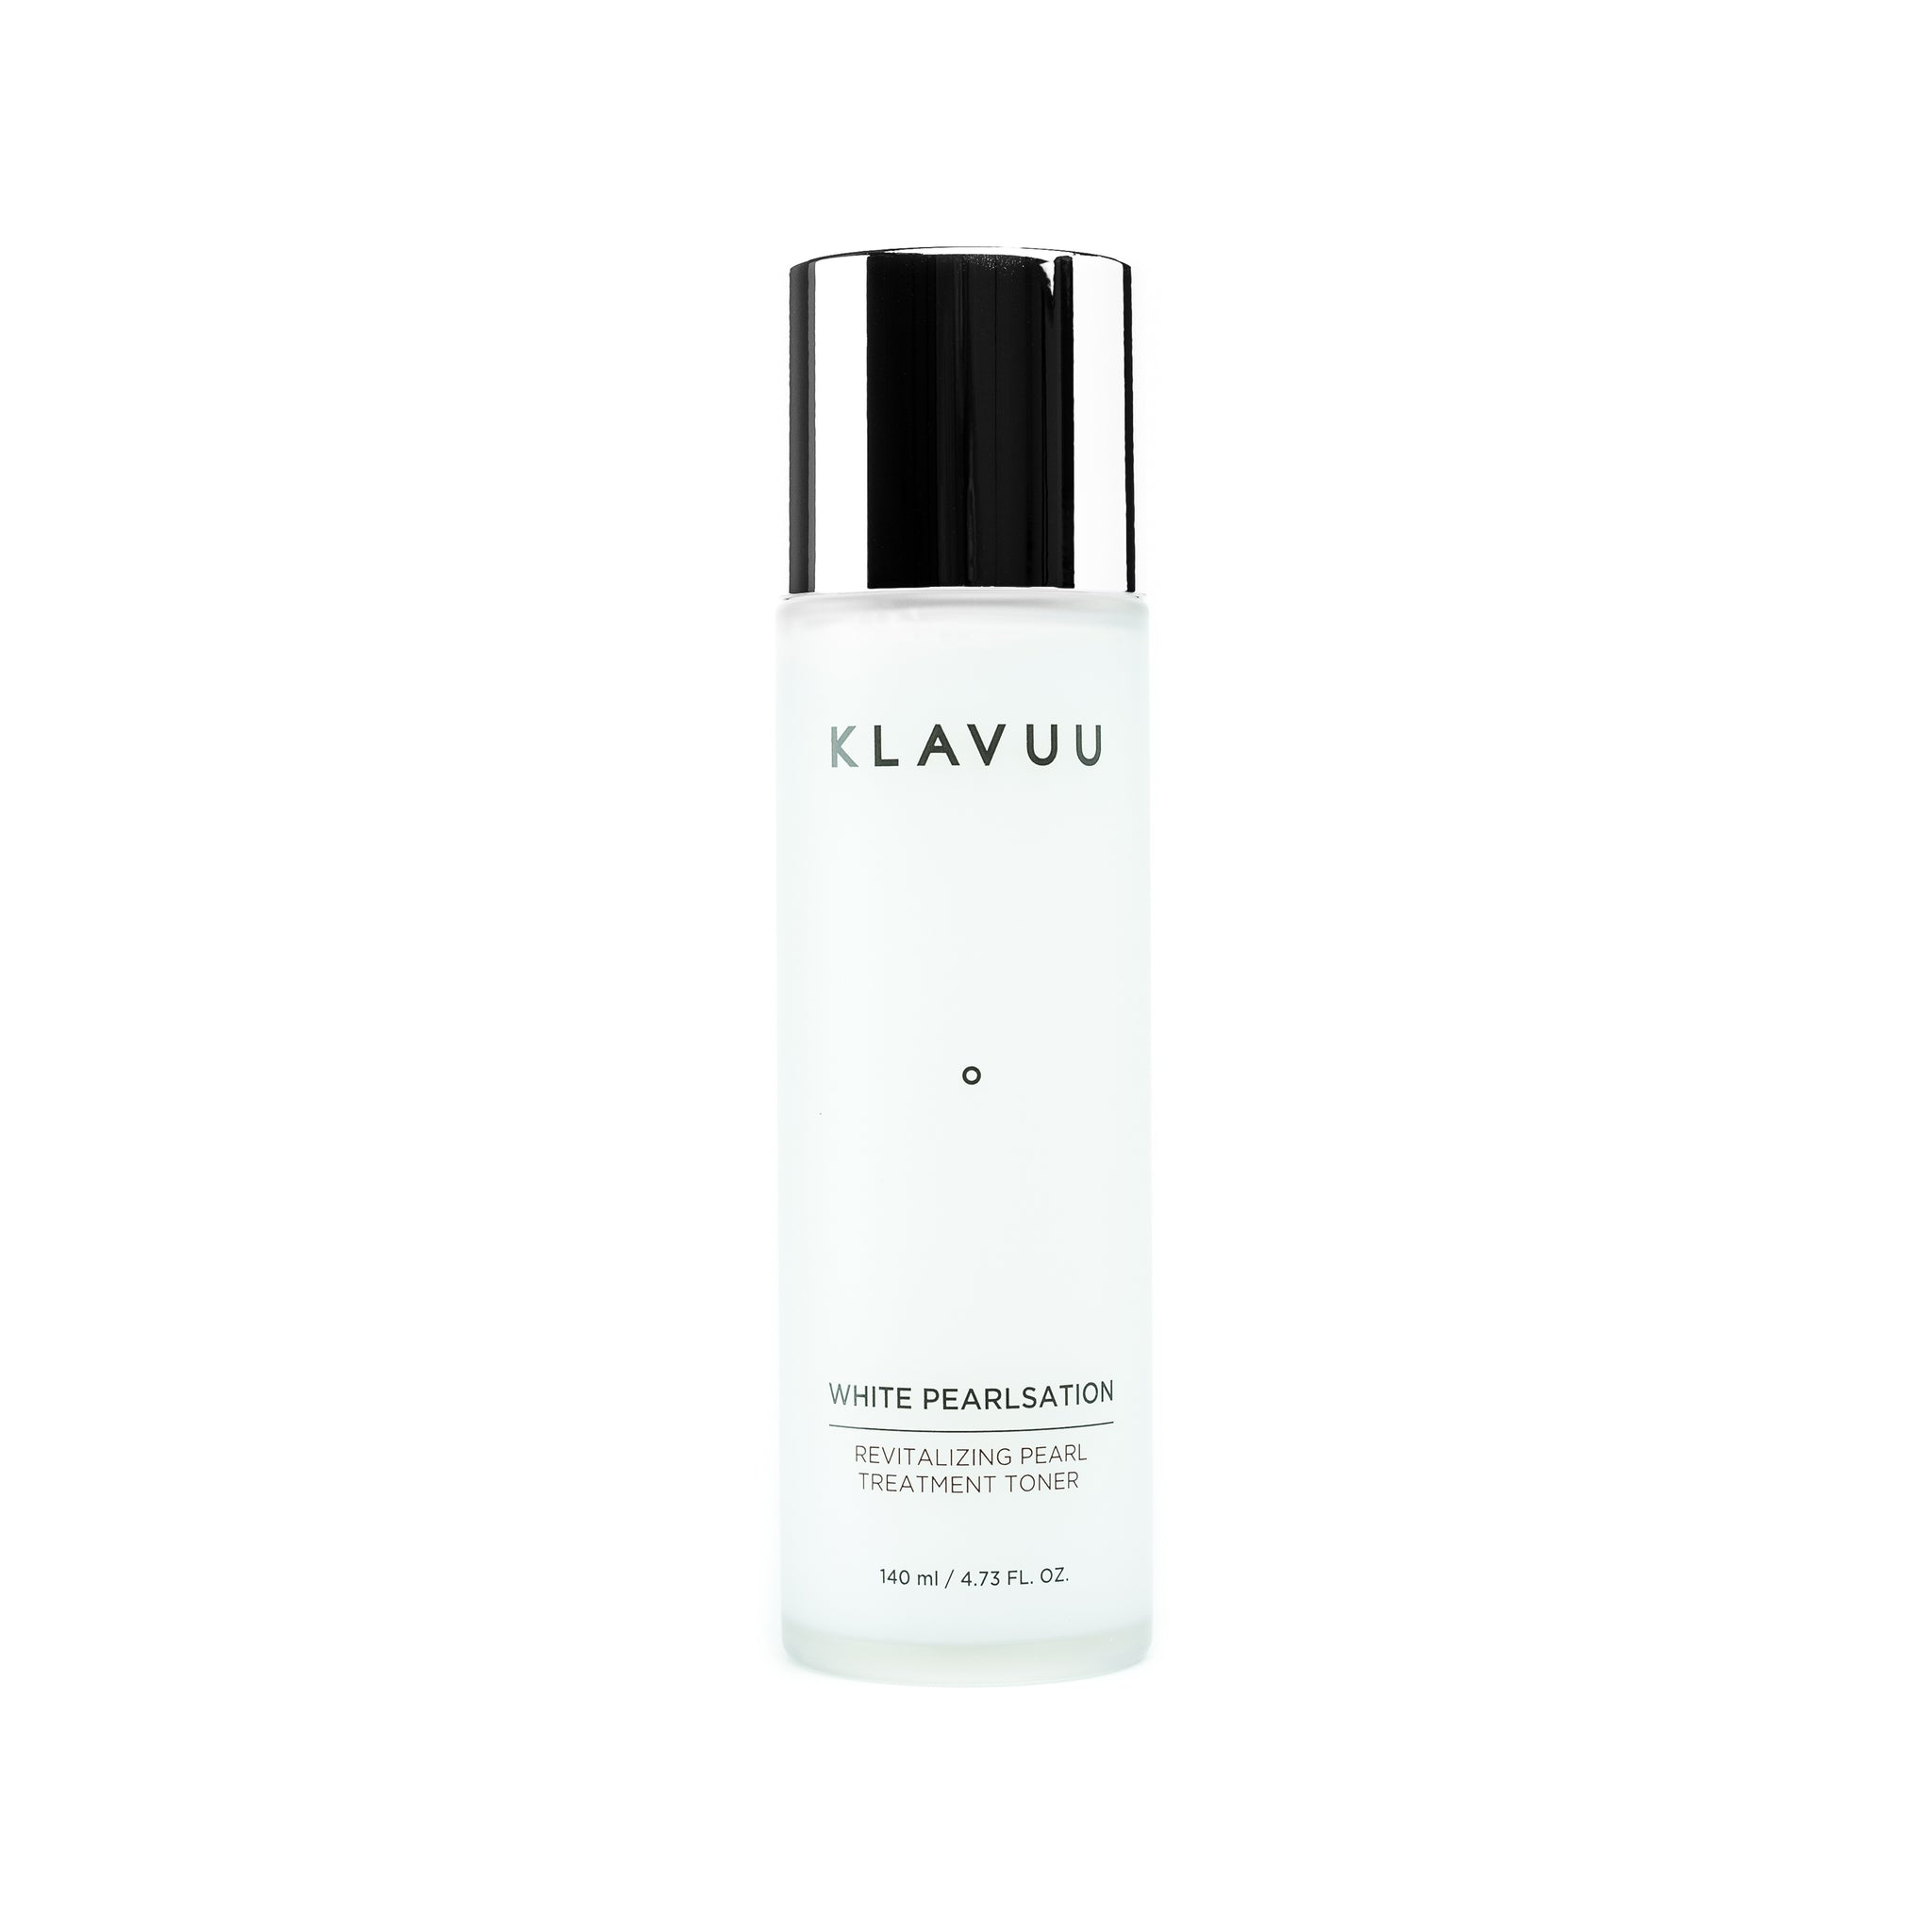 KLAVUU White Pearlsation Revitalizing Pearl Treatment Toner Front